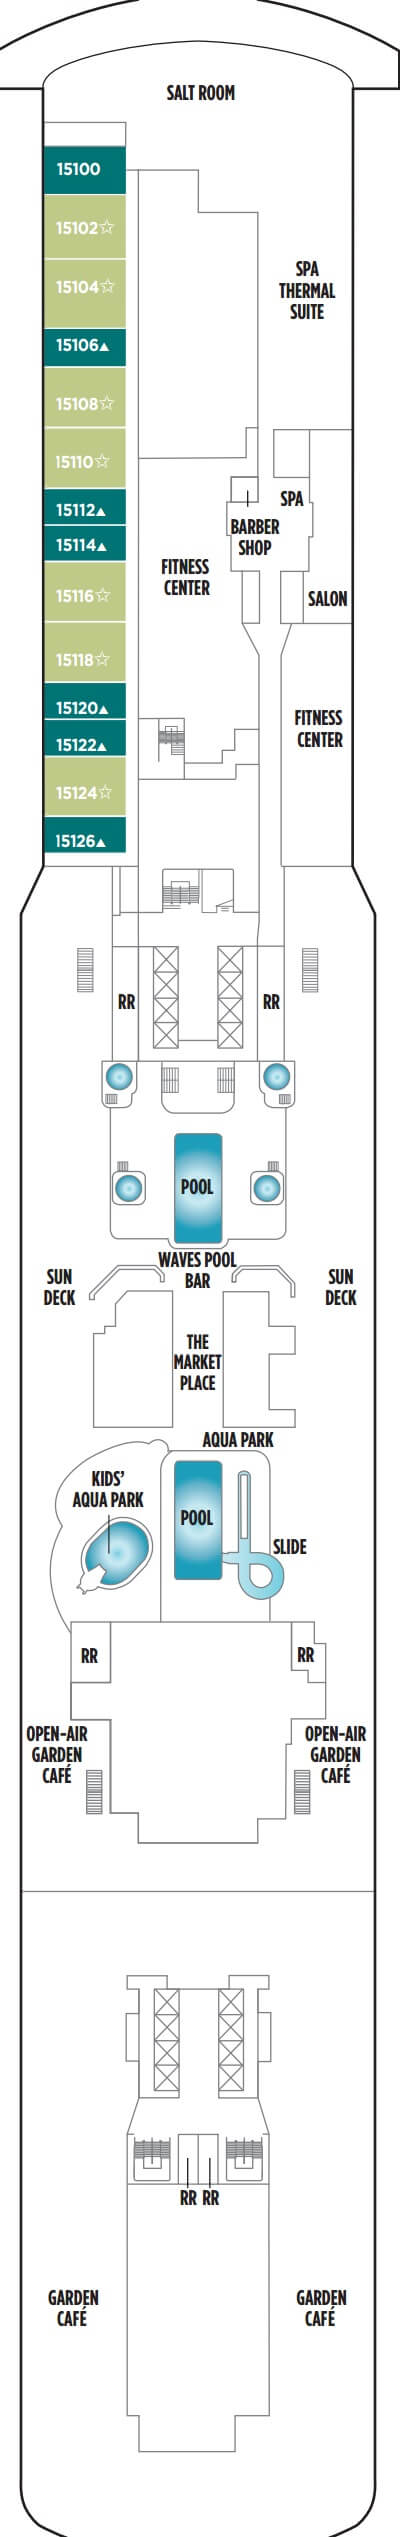 Norwegian Breakaway Deck 15 layout